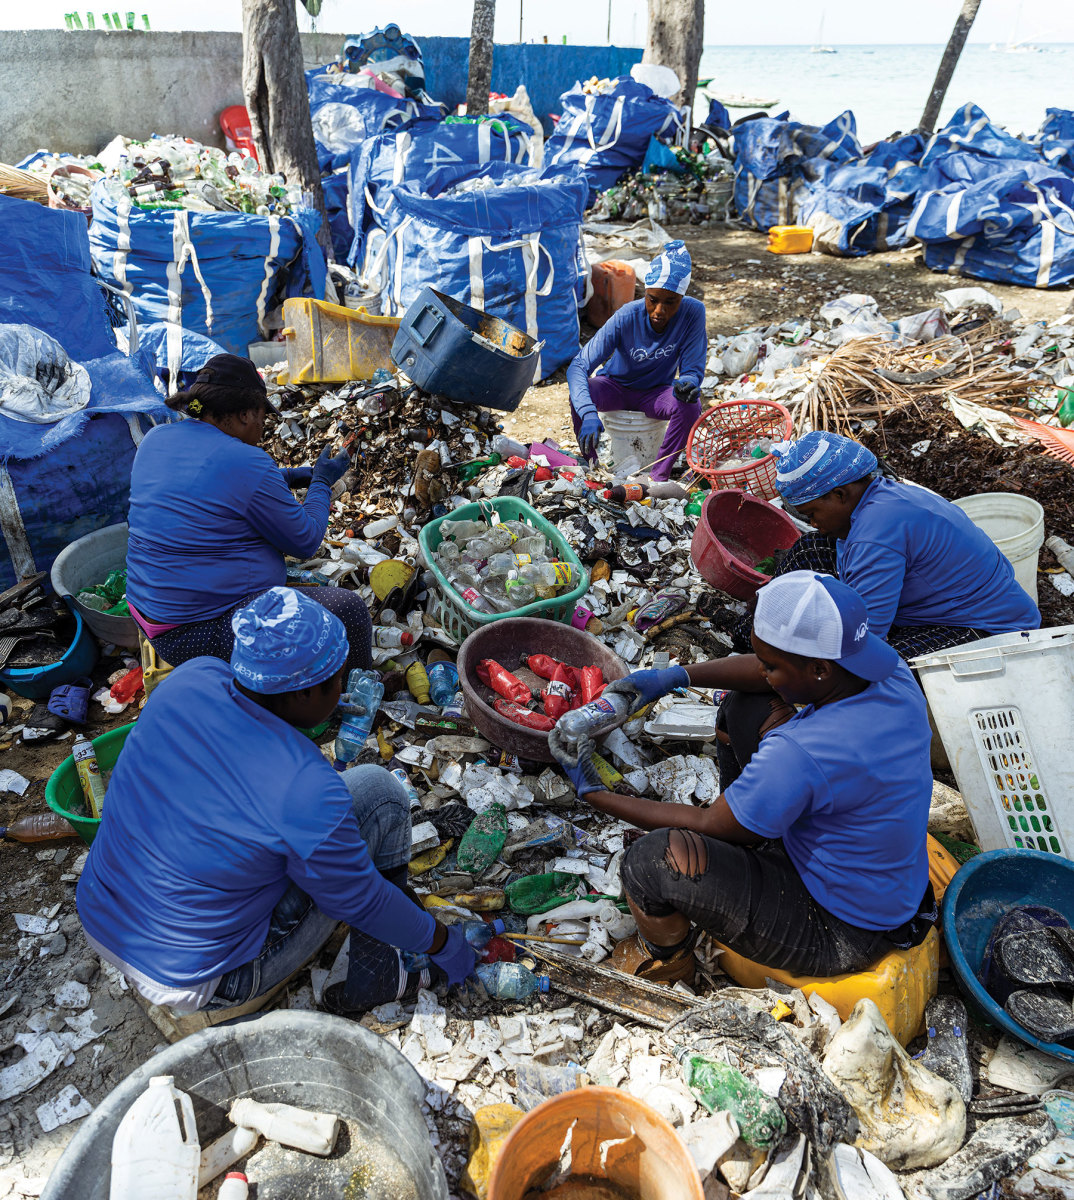 4ocean workers sort plastics recovered from the sea before recycling and upcycling